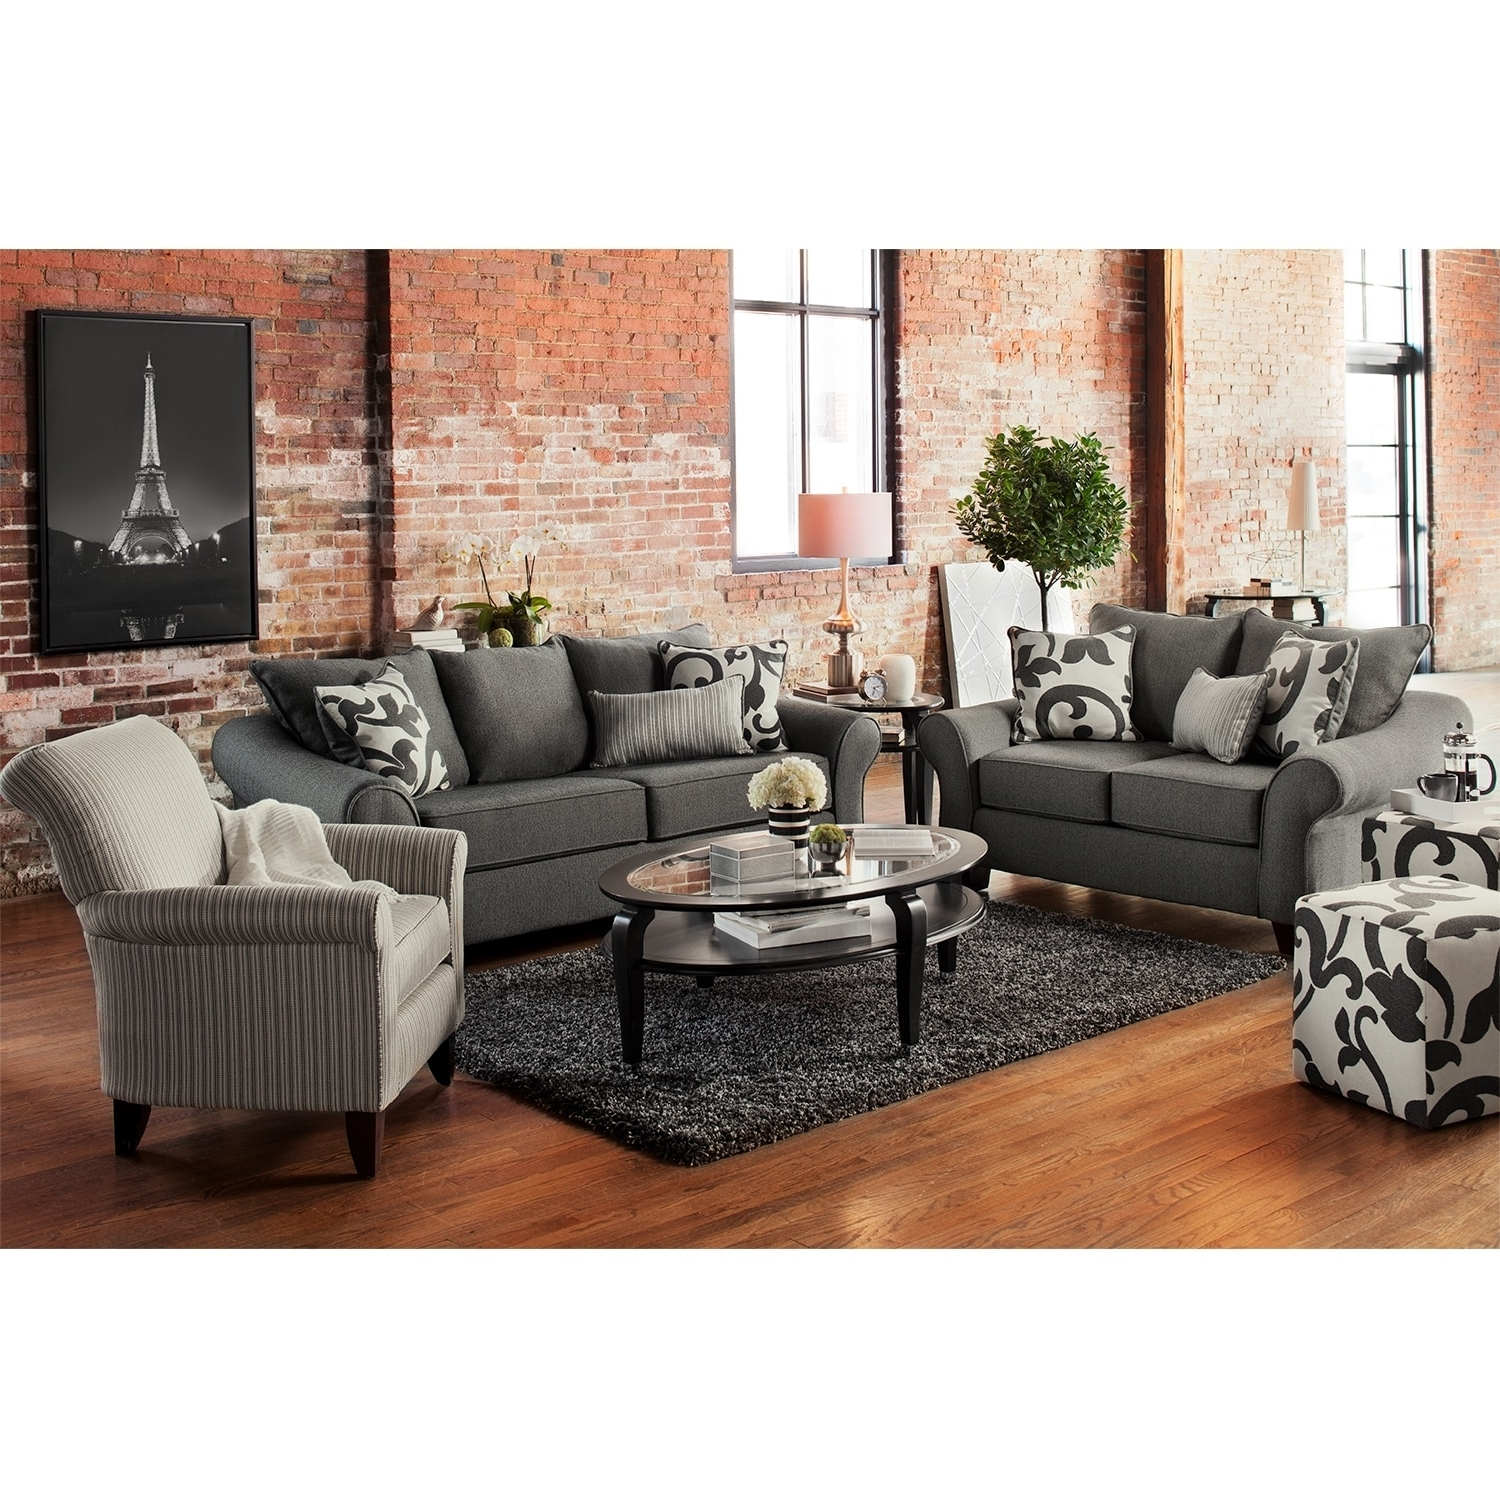 Sofa And Accent Chair Sets Regarding Most Current Sofa Loveseat And Chair Set Pcs Black Classic Leather Sofaseat (View 9 of 15)